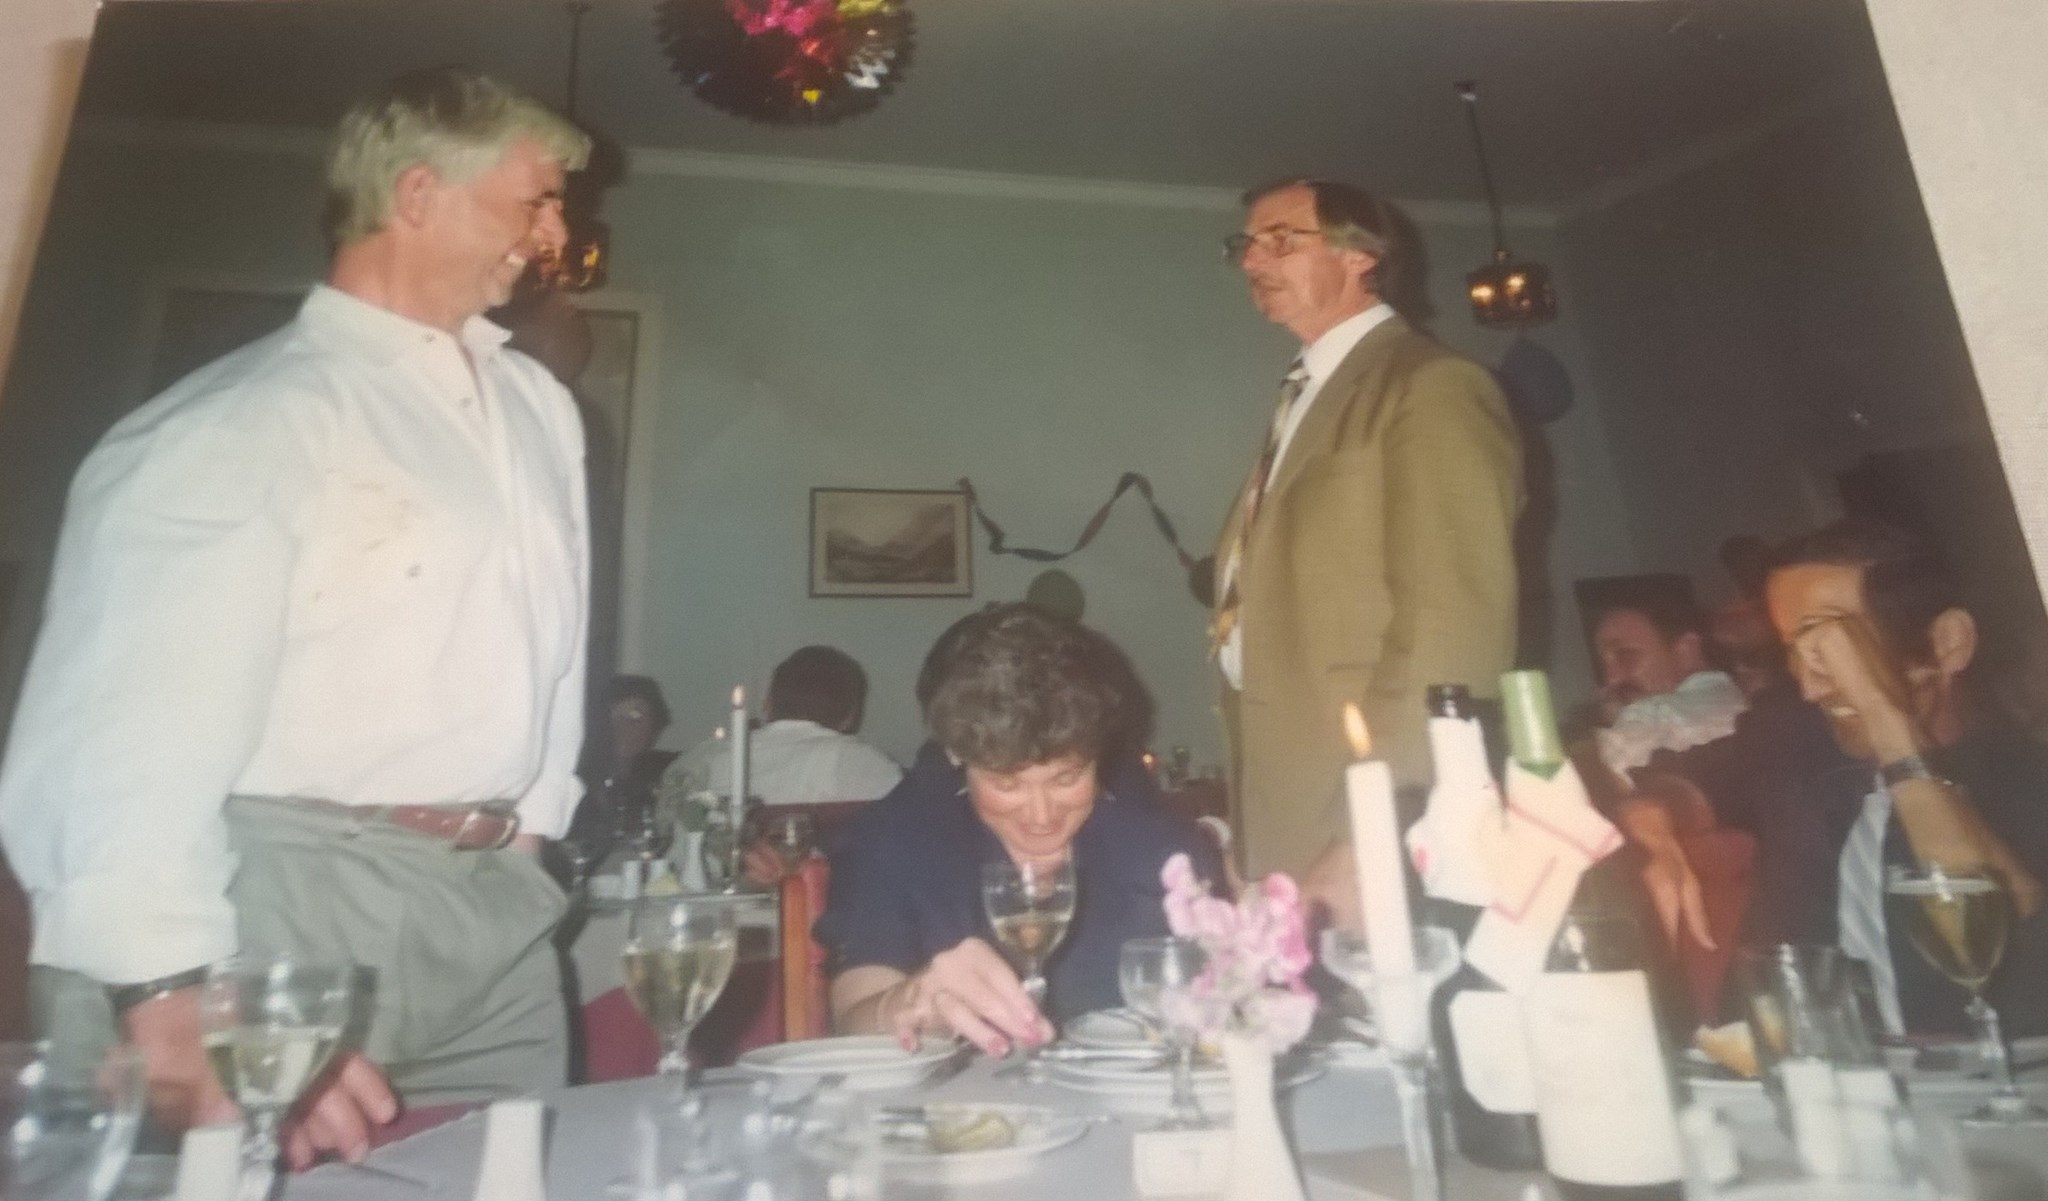 fawlty towers evening in NZ, Bazil looking for dads tie to cut up..but dad had whipped it off and hidden it , just in time lol, happy memory x